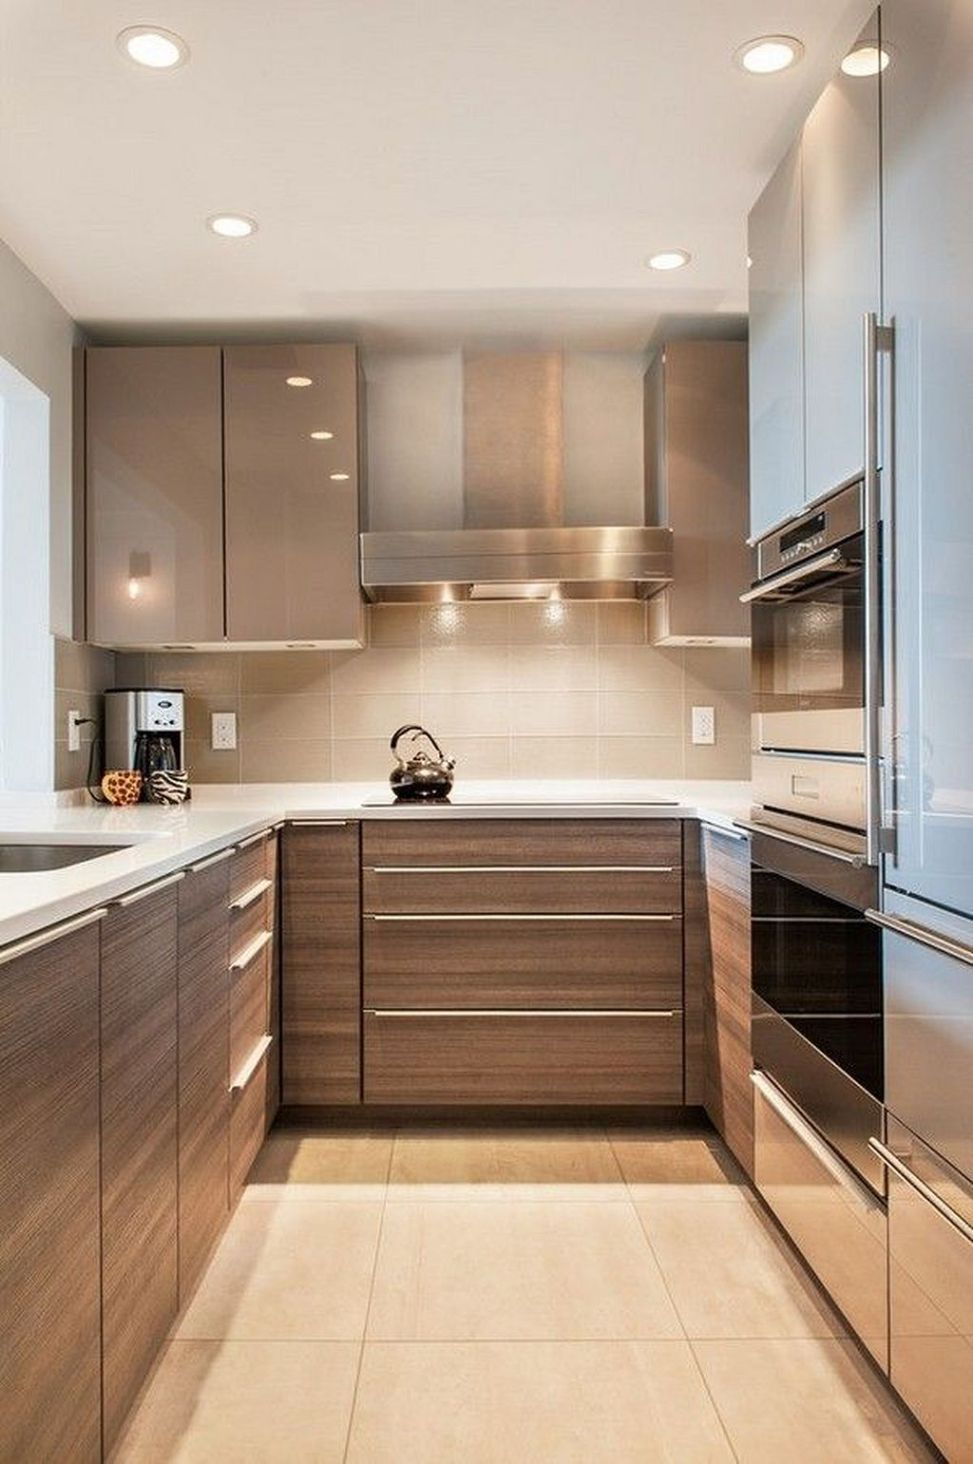 Awesome u shaped kitchen designs for small spaces kitchen